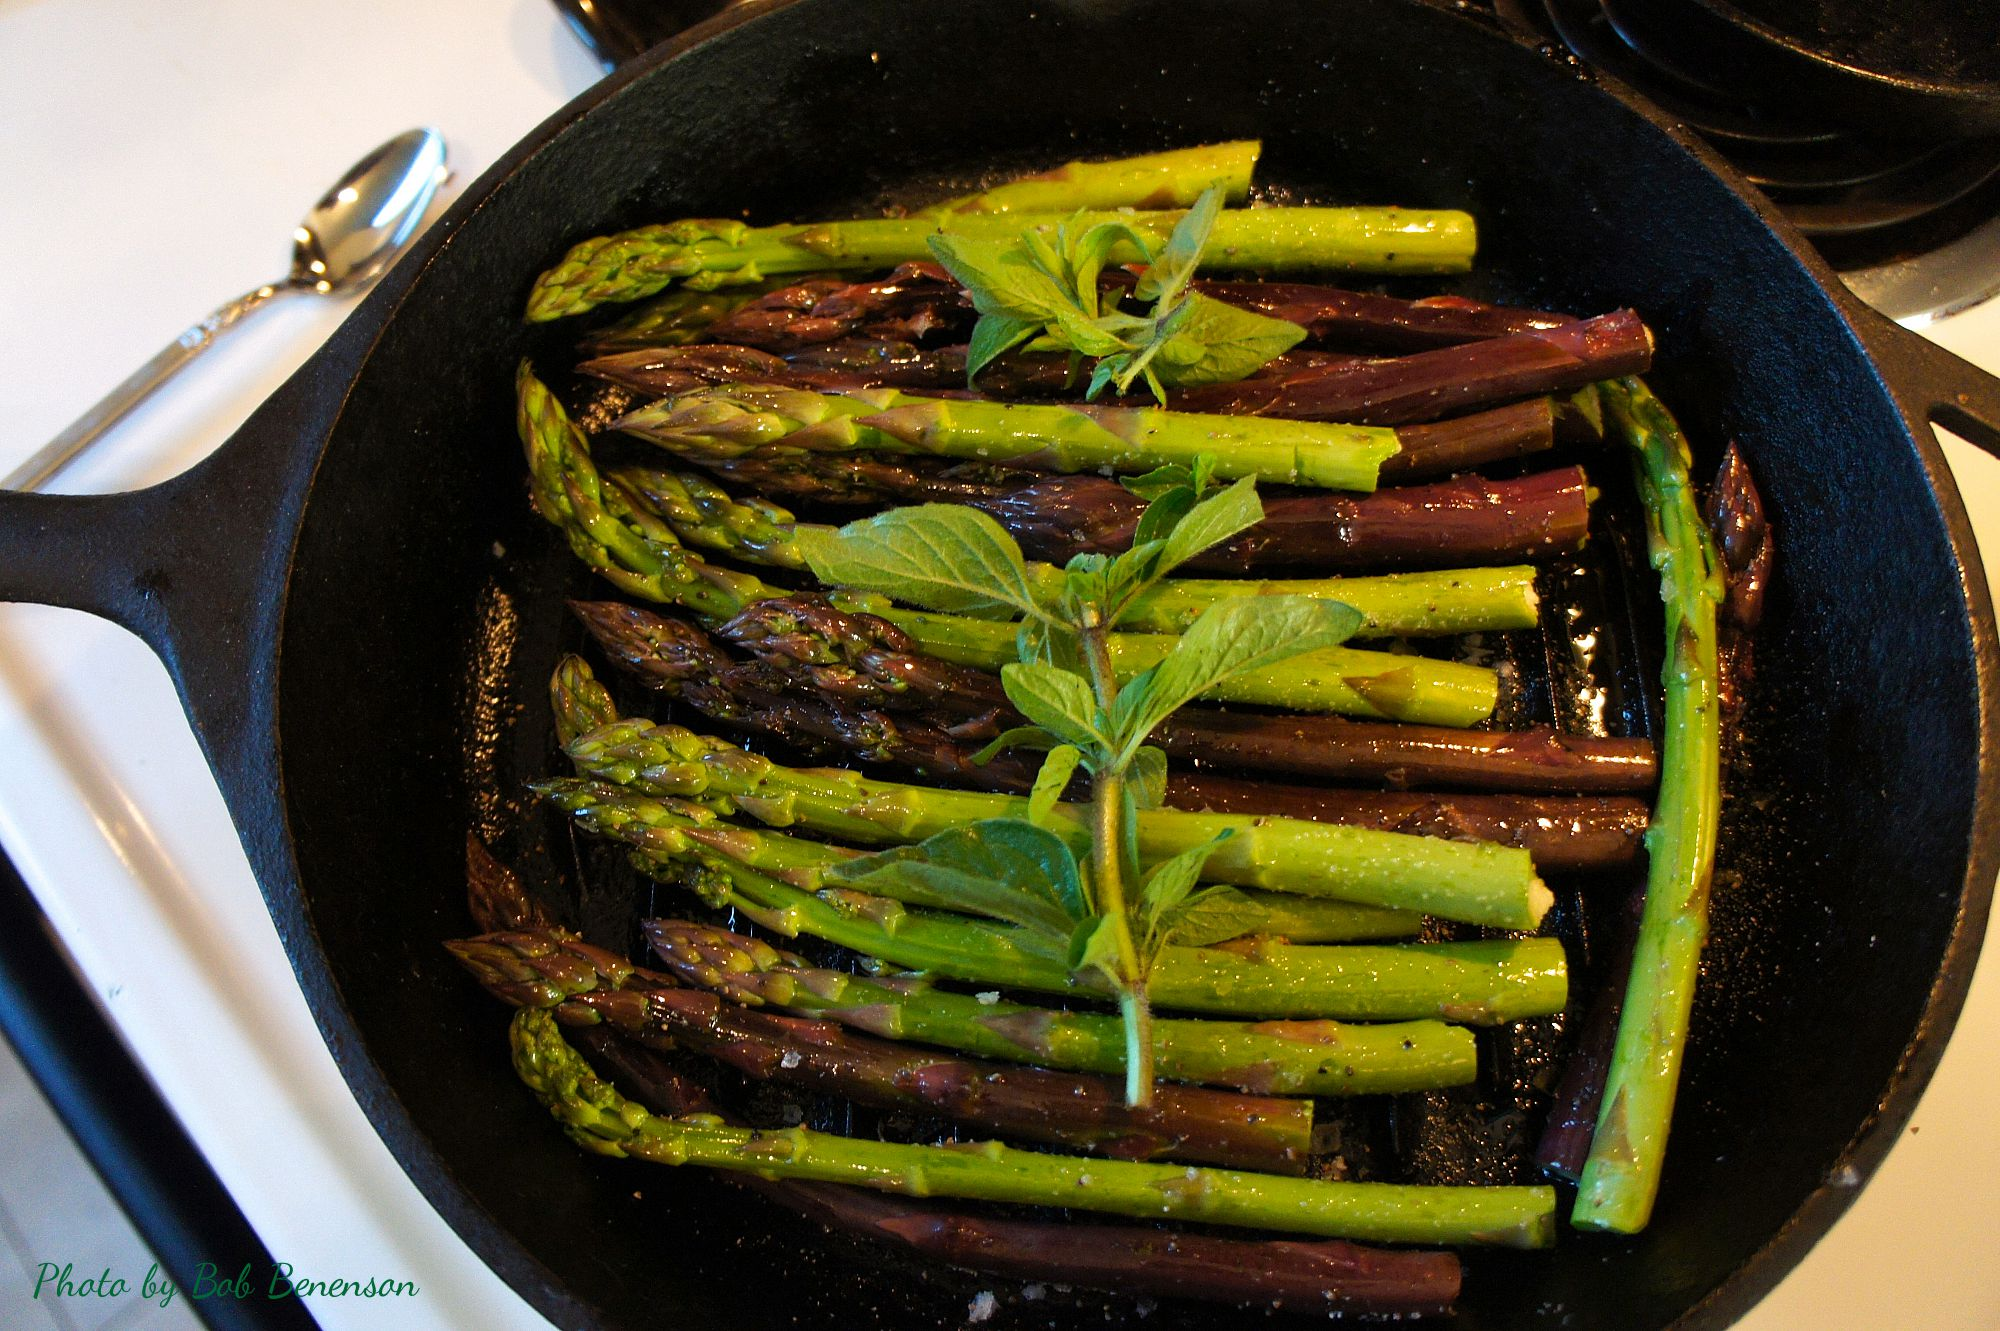 Fresh spring asparagus from Chicago's Green City Market, ready for roasting